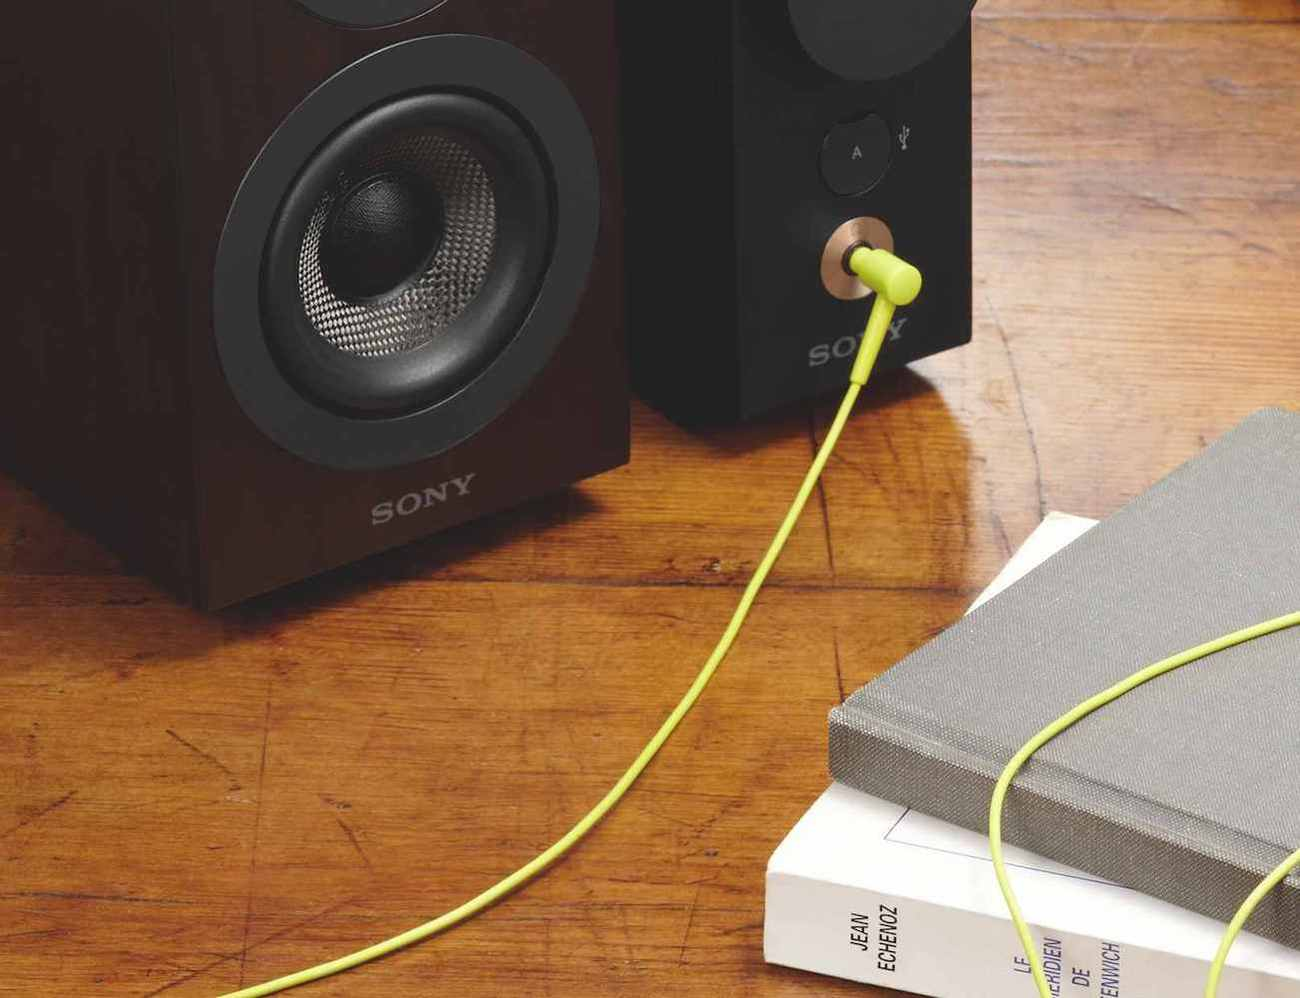 Sony High-Resolution Audio System